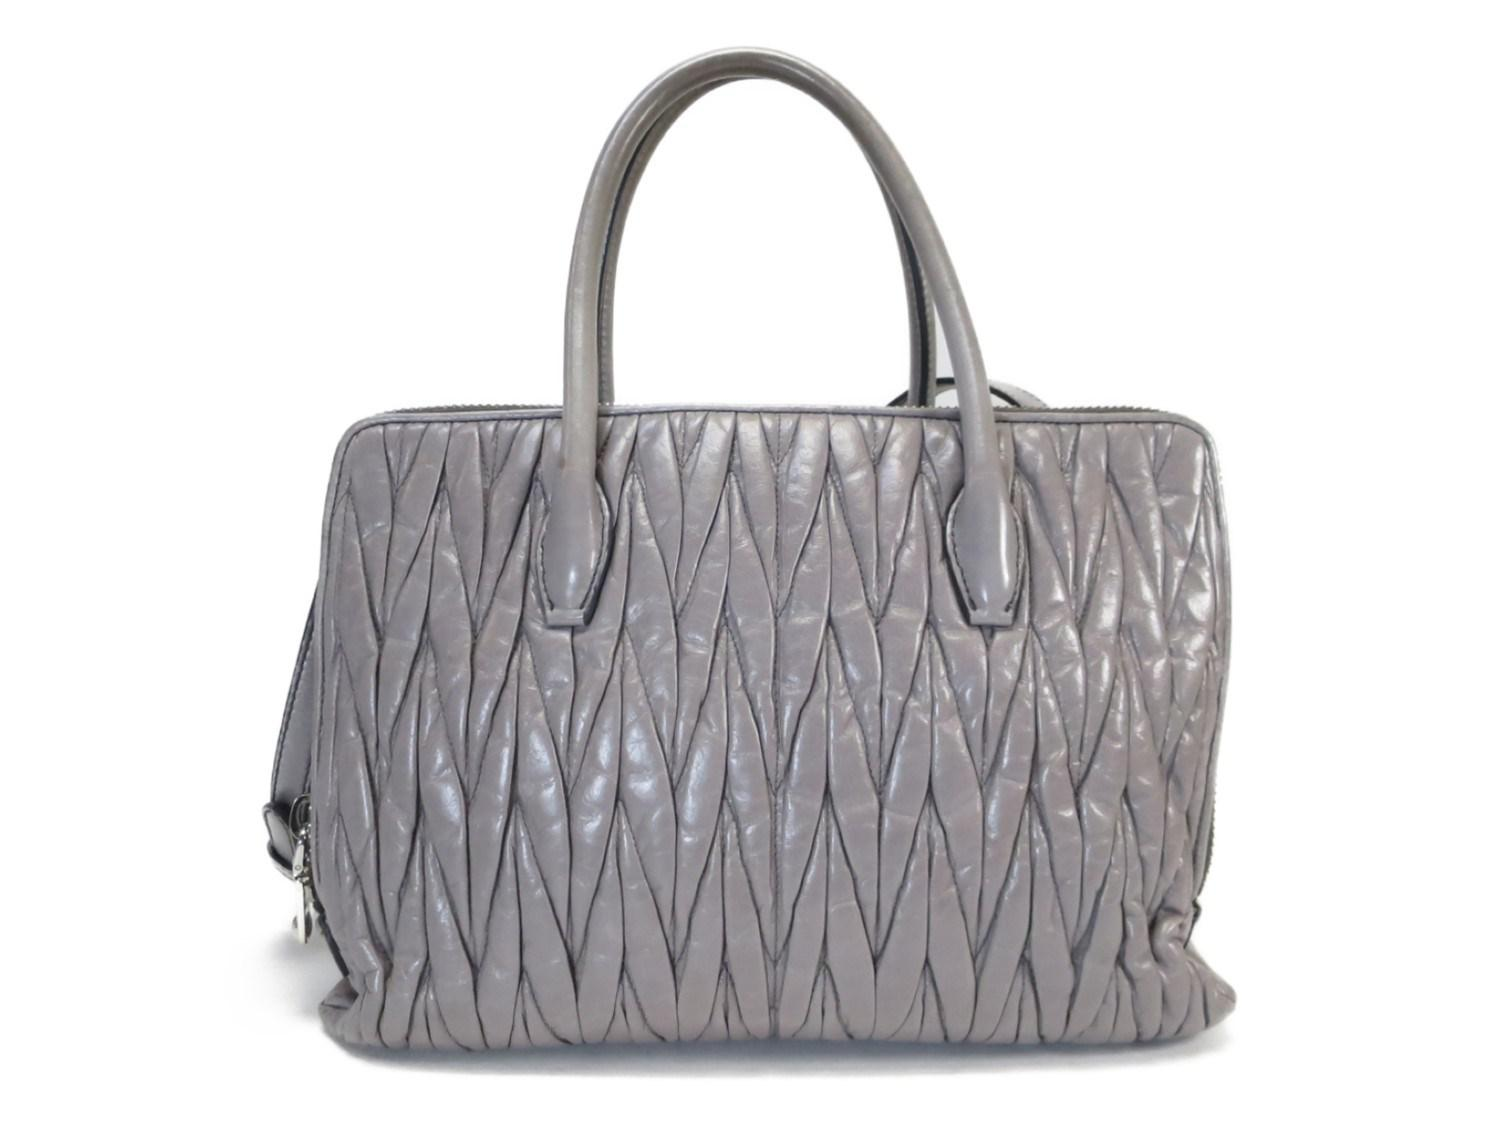 Lyst - Miu Miu Authentic Matelasse Shoulder Tote Bag Gray Leather ... bf2ad71e7a263